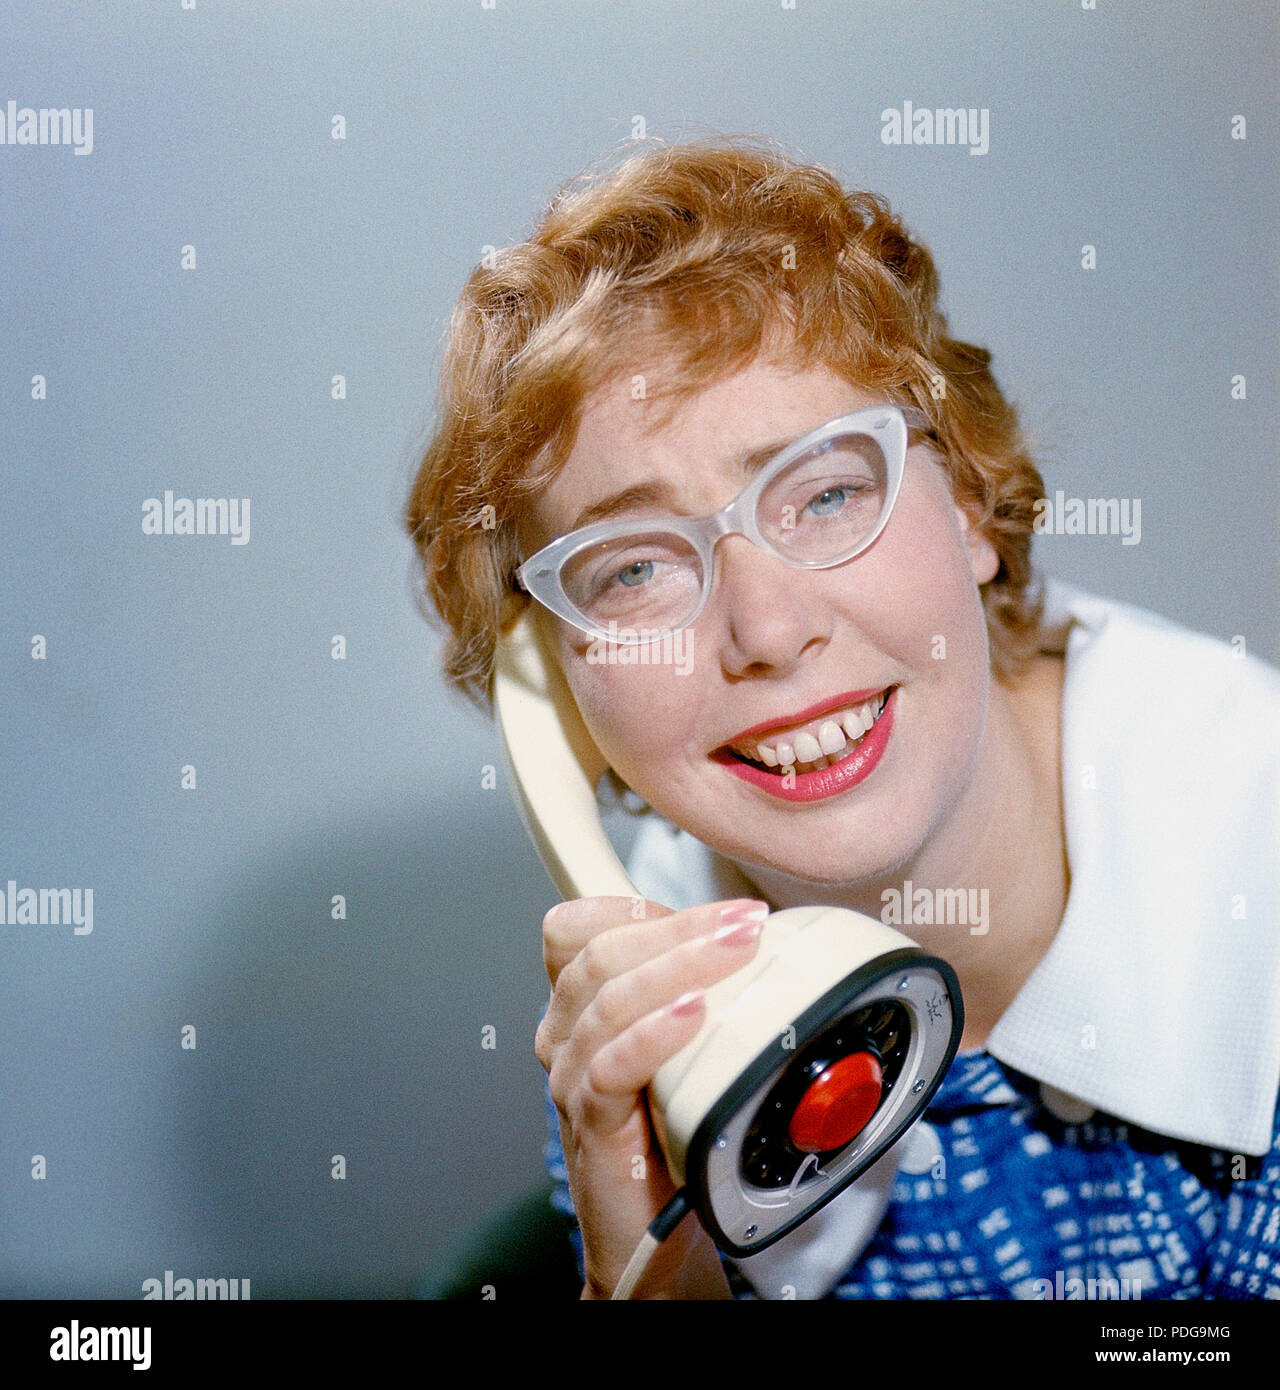 1950s glasses and telephone. A young woman in typical fifties glasses and bows is talking on the telephone.  Swedish on-piece plastic telephone created by Ericsson Company of Sweden and launched 1956. Because of its styling and its influence on future telephone design, the Ericofon is considered one of the most significant industrial designs of the 20th century. The idea was to incorporate the dial and handset into one single unit. To call, you lifted it up and dialed the number, and to end the call, you put the phone down.  The model is also known as the Cobra telephone for its resemblance to - Stock Image